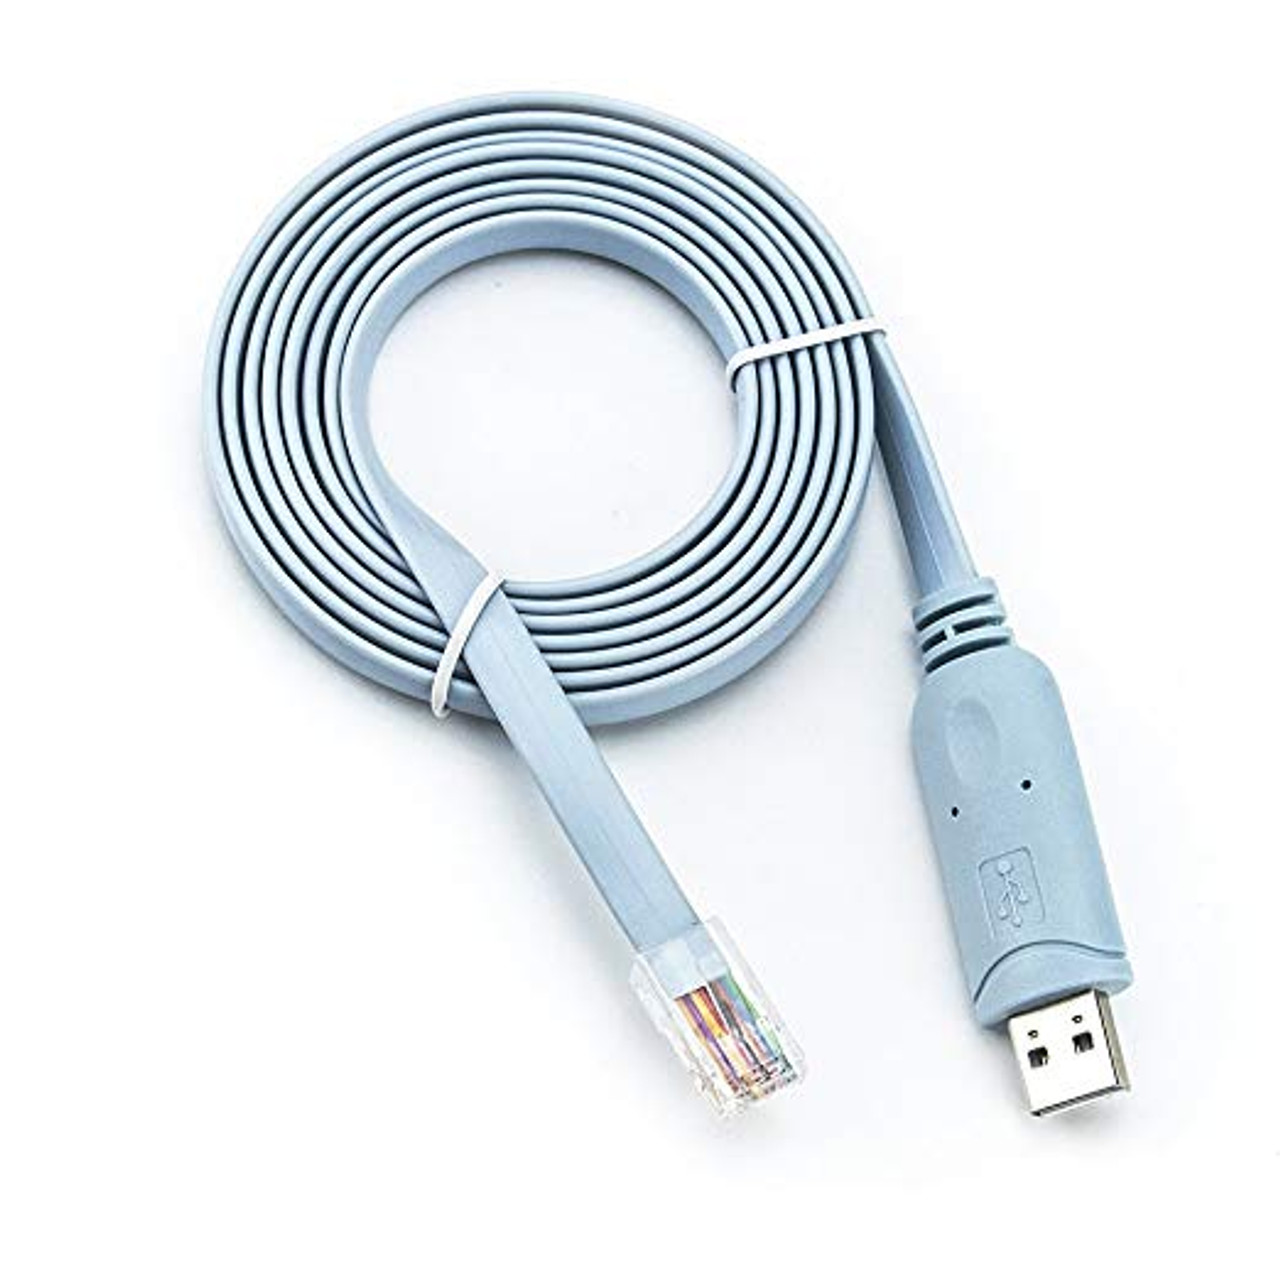 Product image for 2M USB RJ45 Cisco Console Cable | CX Computer Superstore